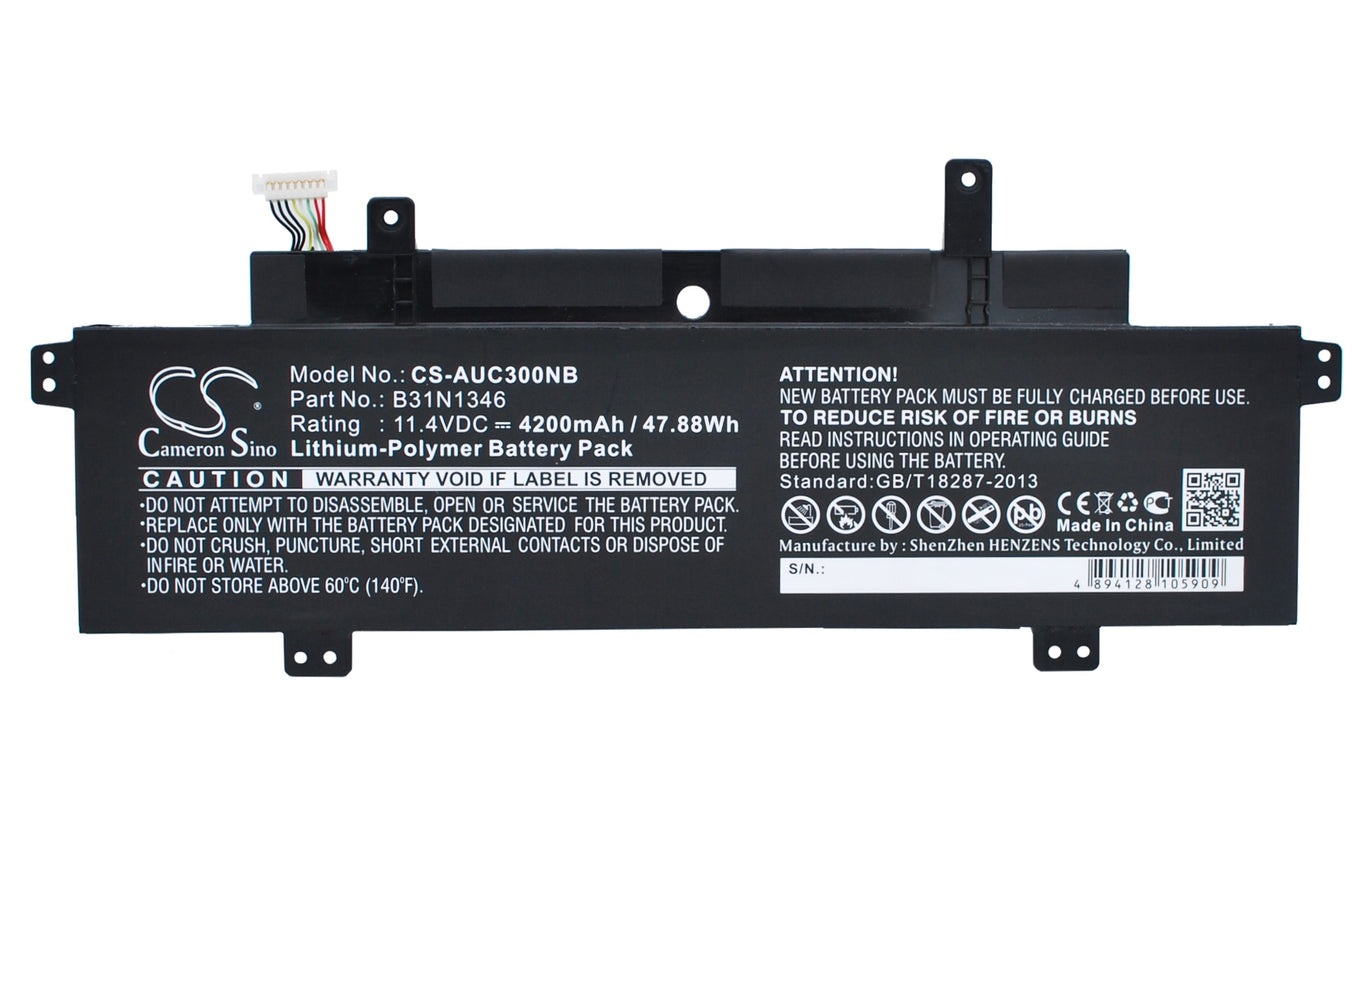 CS-AUC300NB Cameron Sino Battery